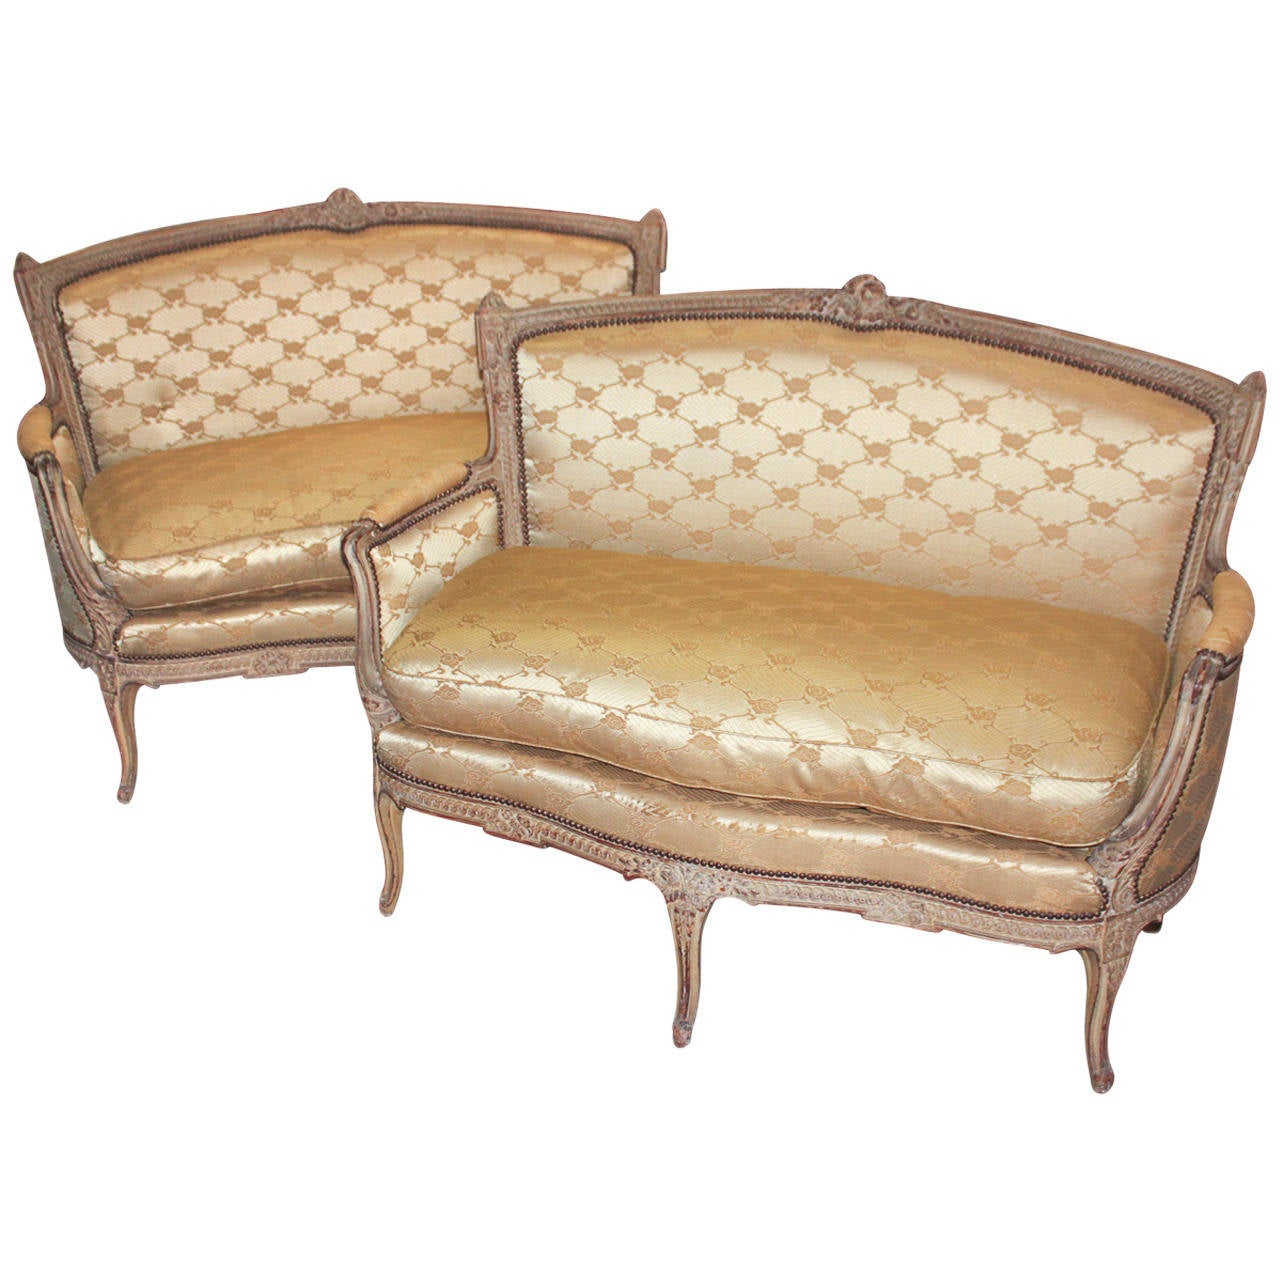 Great pair of 19th century french settees for sale at 1stdibs for Settees for sale